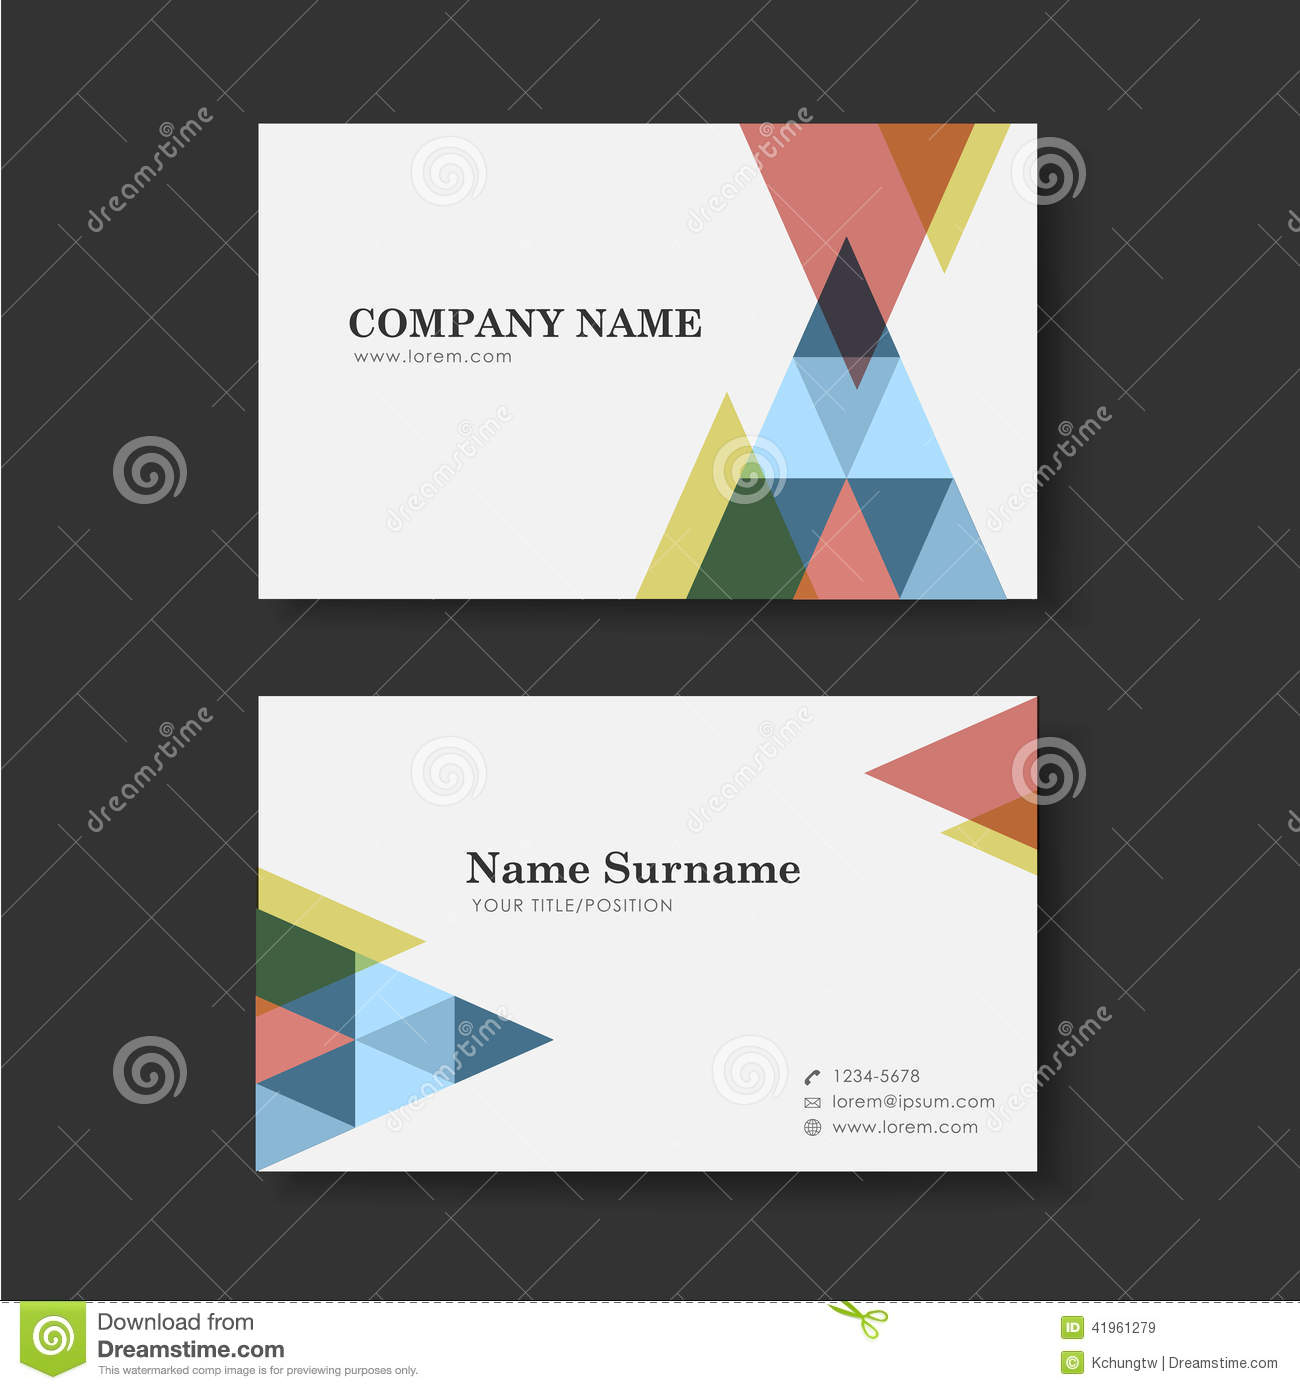 vector business card design template of triangle stock vector image 41961279. Black Bedroom Furniture Sets. Home Design Ideas